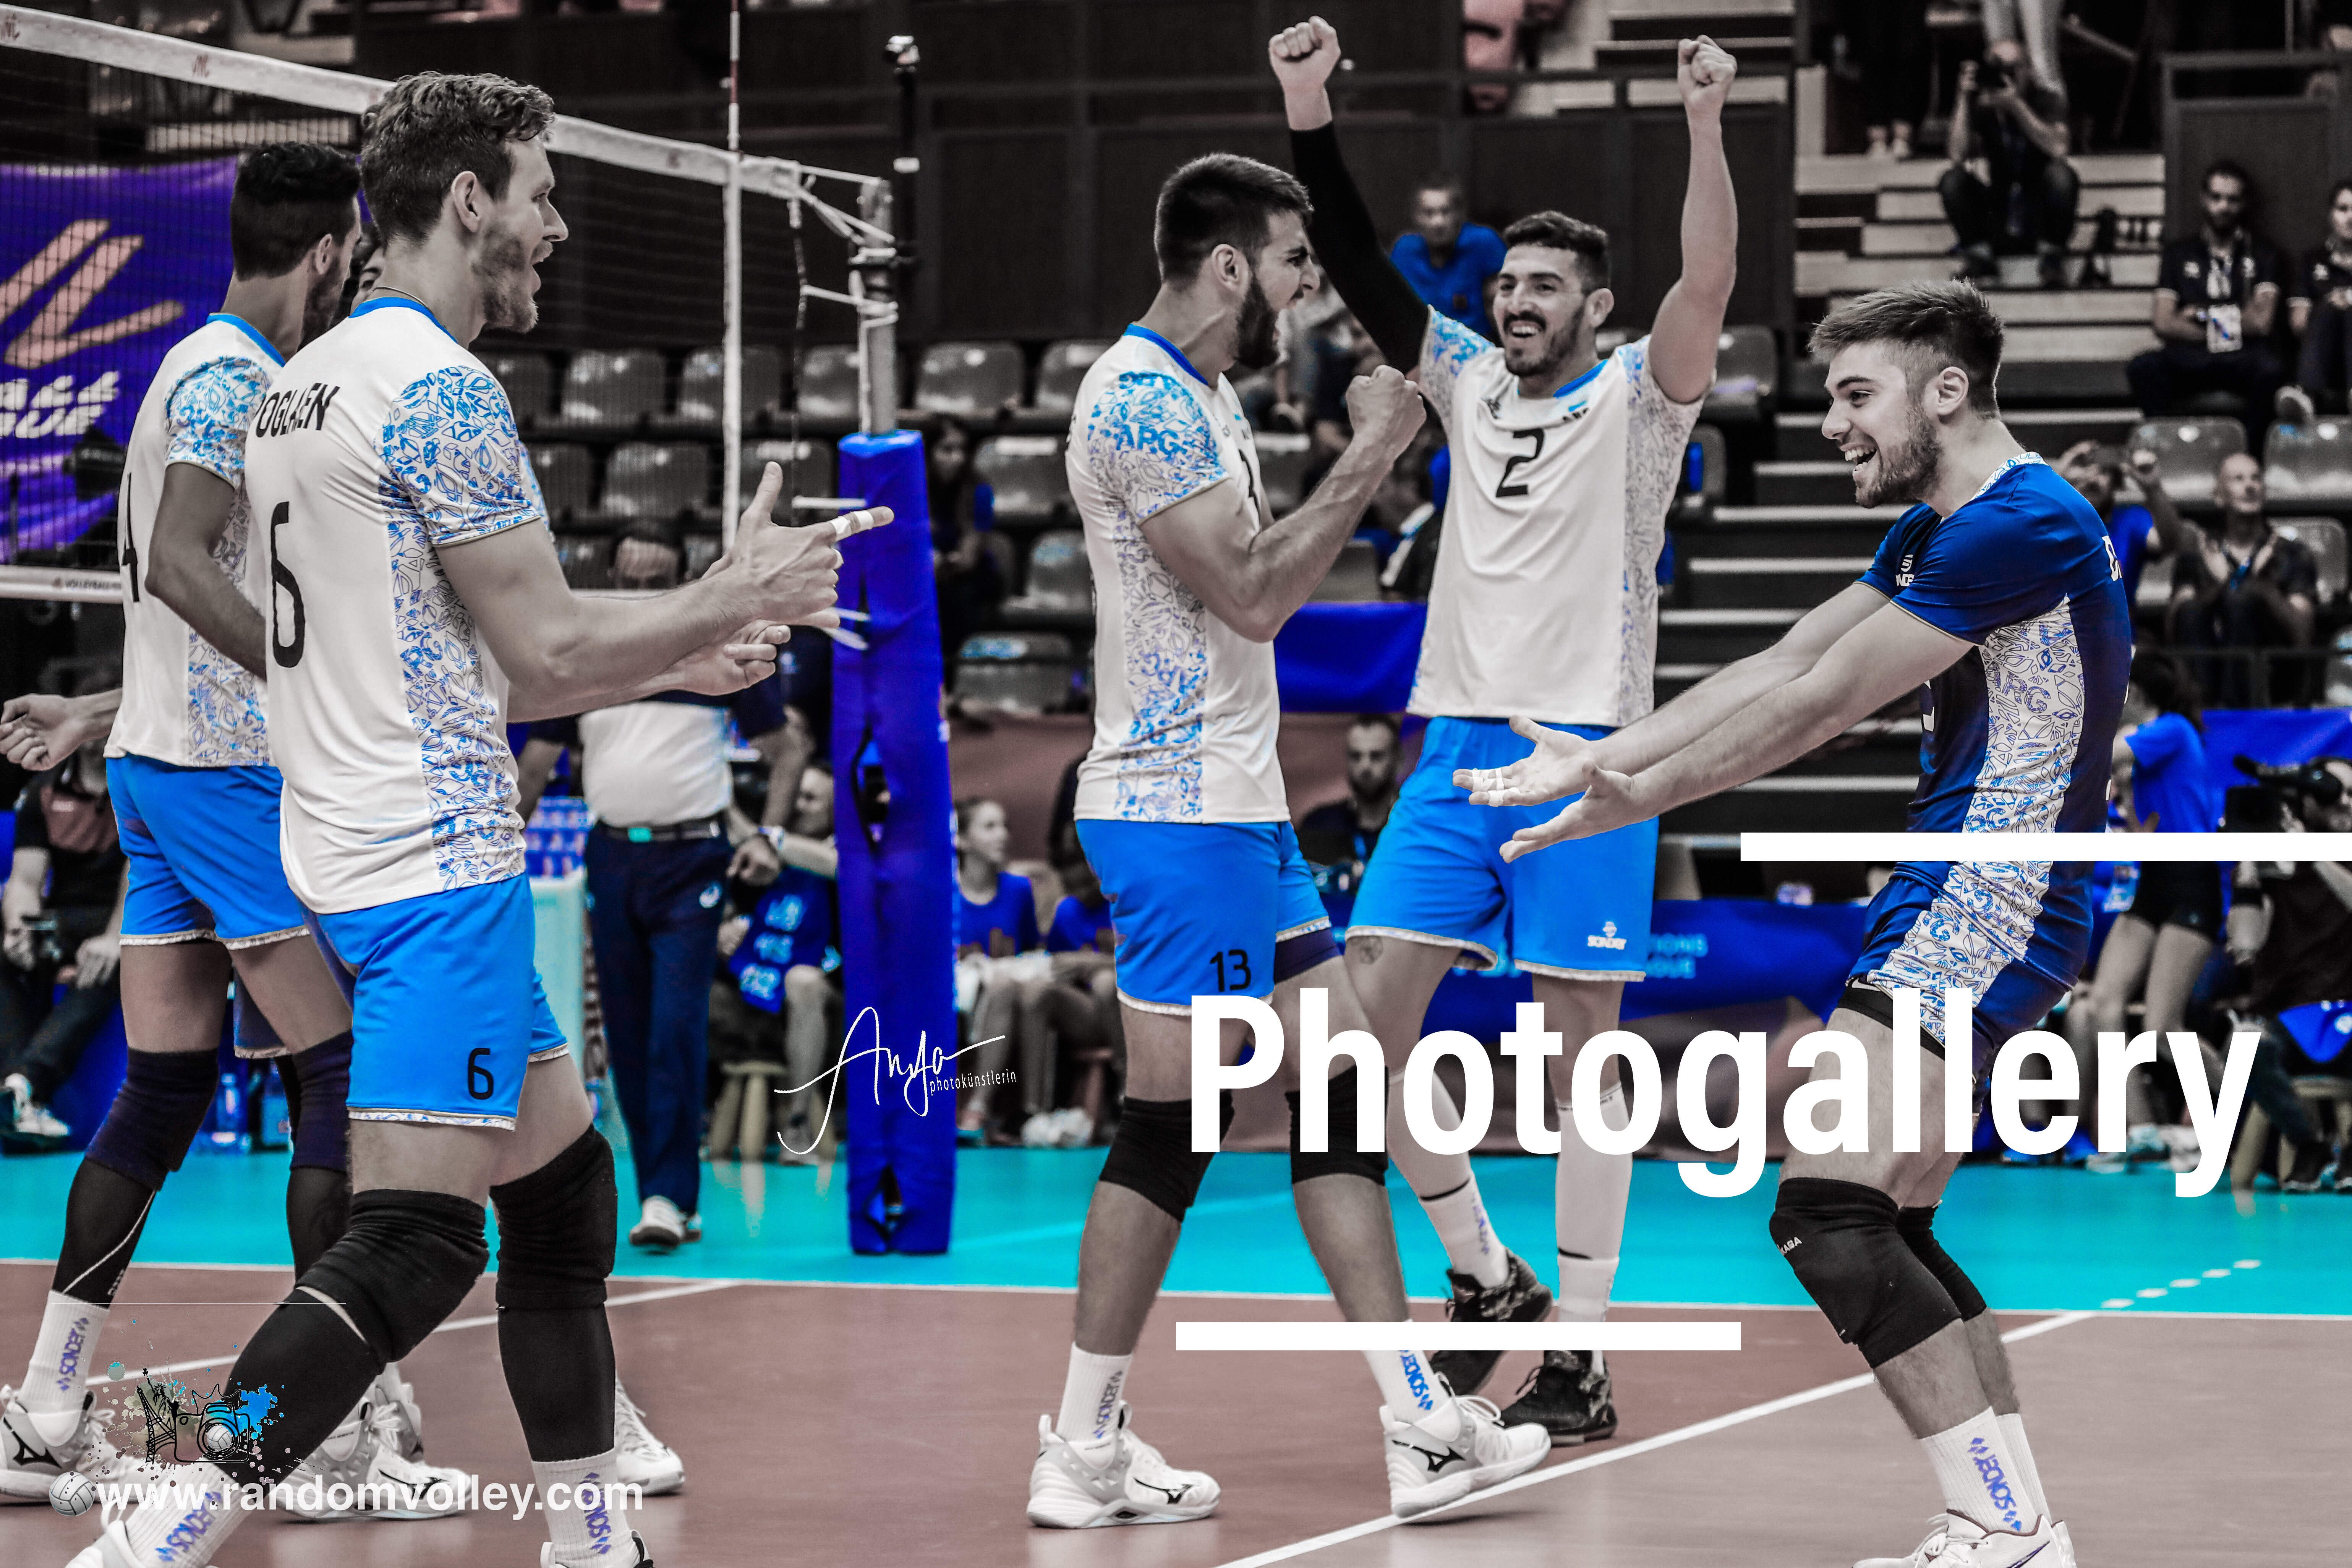 VNL 2019: Photogallery of Argentina-Germany